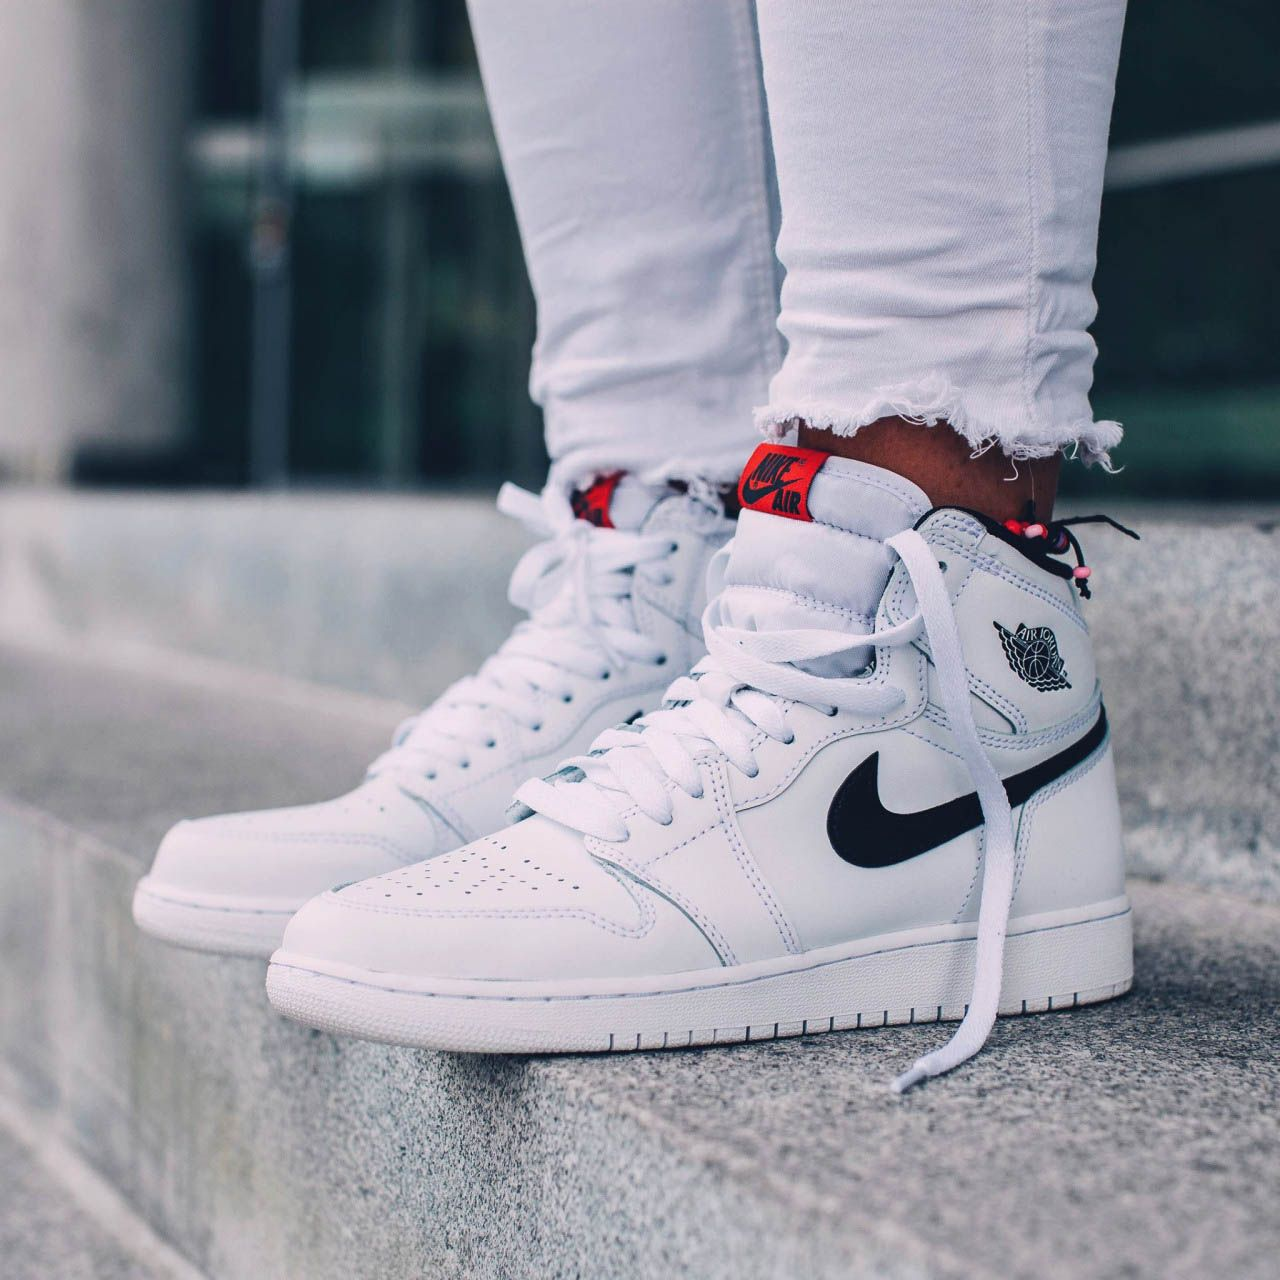 Nike Air Jordan 1 Retro High Og 'white X Black X Touch Of